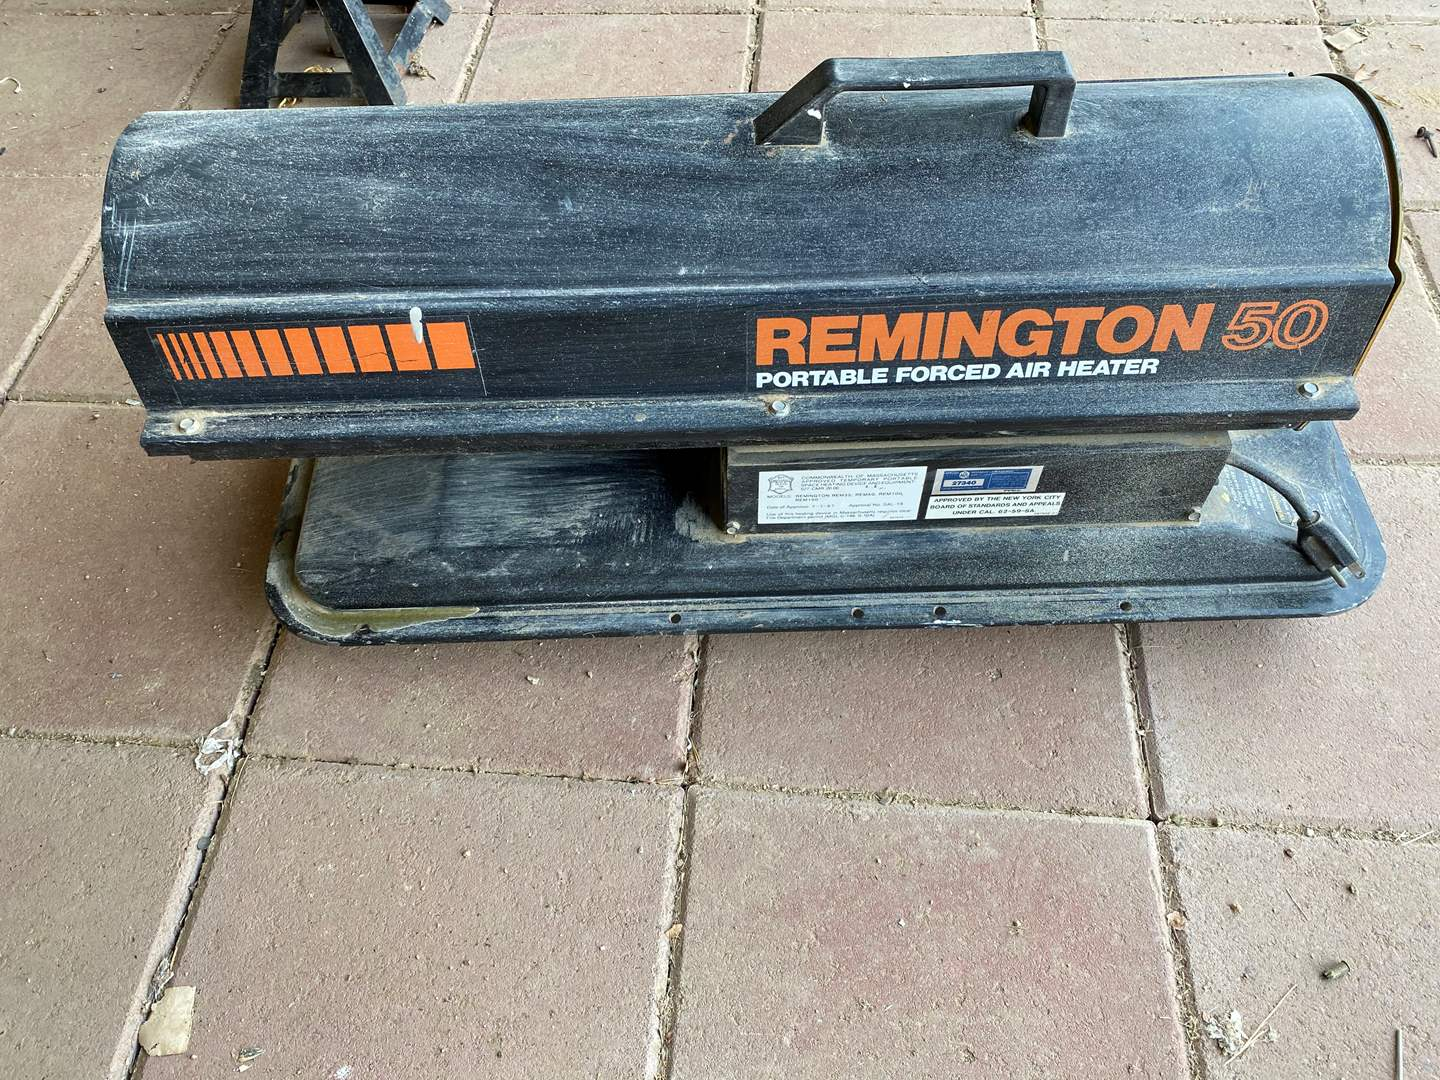 Lot # 155 - REMINGTON 50 FORCED AIR HEATER (main image)